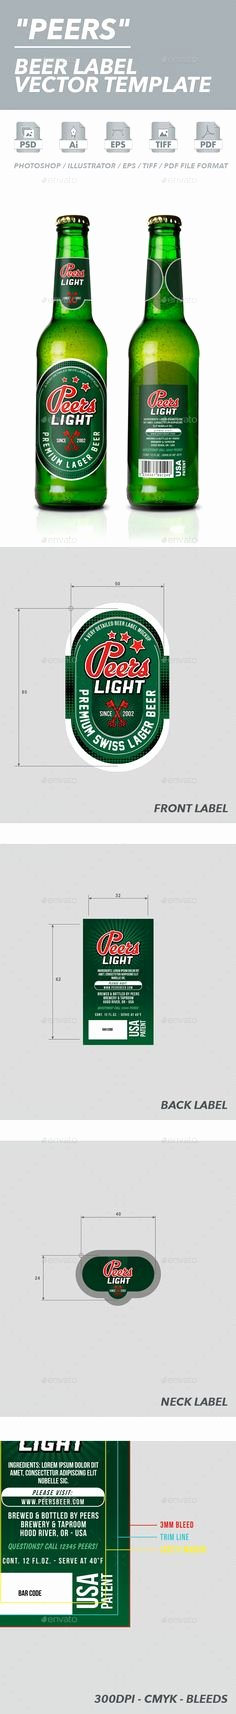 Beer Label Template Psd Fresh 1000 Images About Premium Packaging Templates On Pinterest